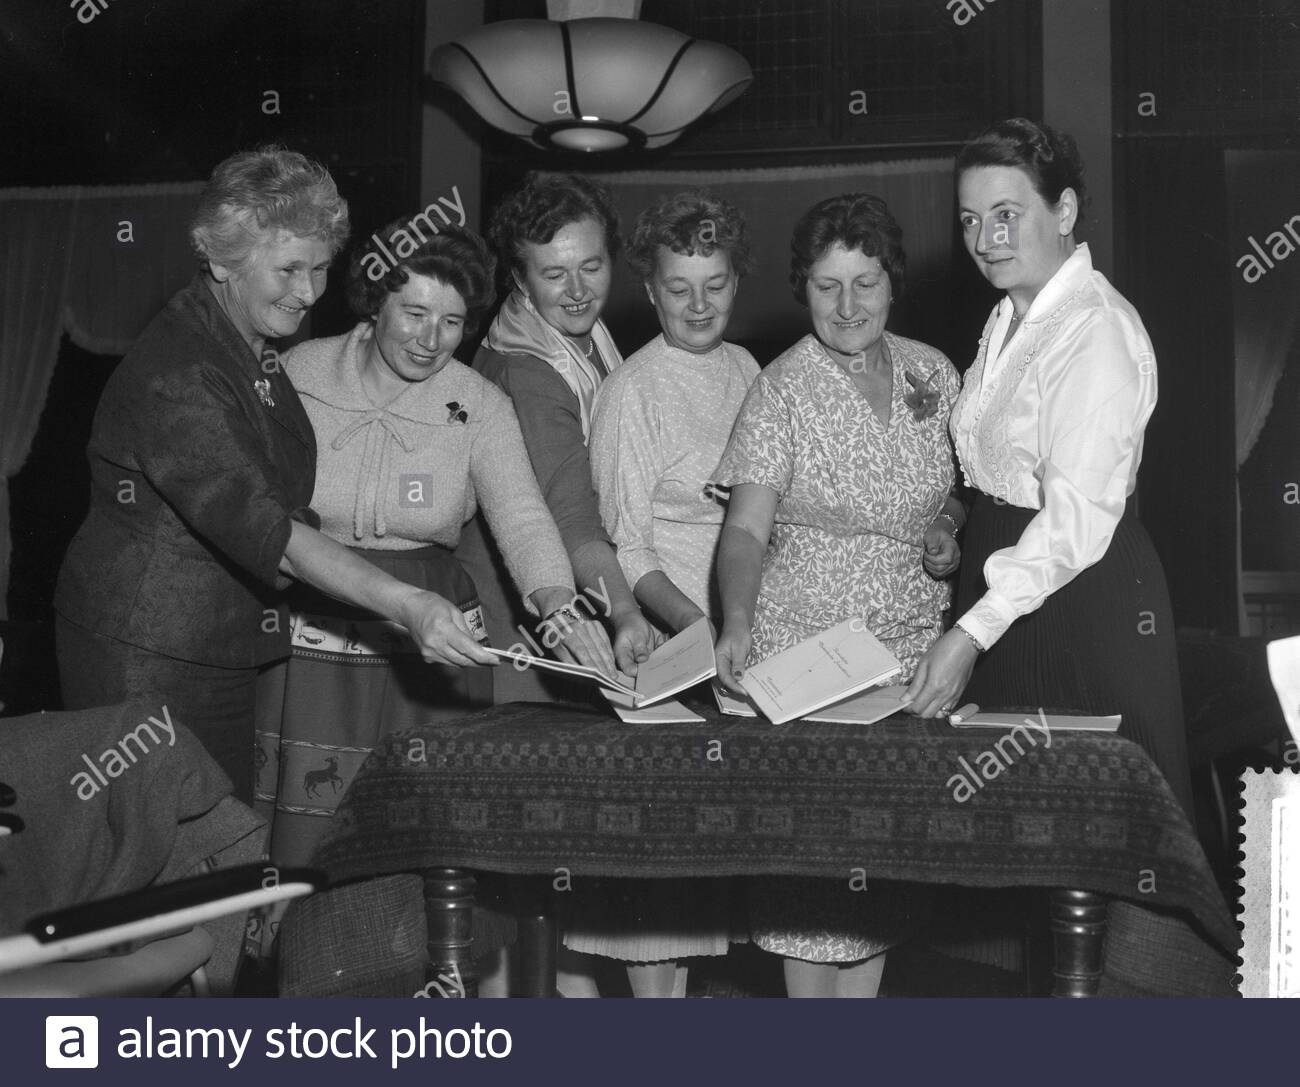 Opening Ladies Danlon chess tournament in Amsterdam, v.l.n.r. T. Roodzant, F. Heemskerk, I. Larsen, L. Timofeeva, E. Rinder, R. Bruce Date: October 21, 1959 Location: Amsterdam, Noord-Holland Keywords: group portraits, chess Person Name: Bruce, Rowena Mary, Heemskerk, Fenny , Larsen, I., Rinder, Elfriede, Roodzant, Toos, Timofeeva. Lidia - Image ID: 2AW6KHJ